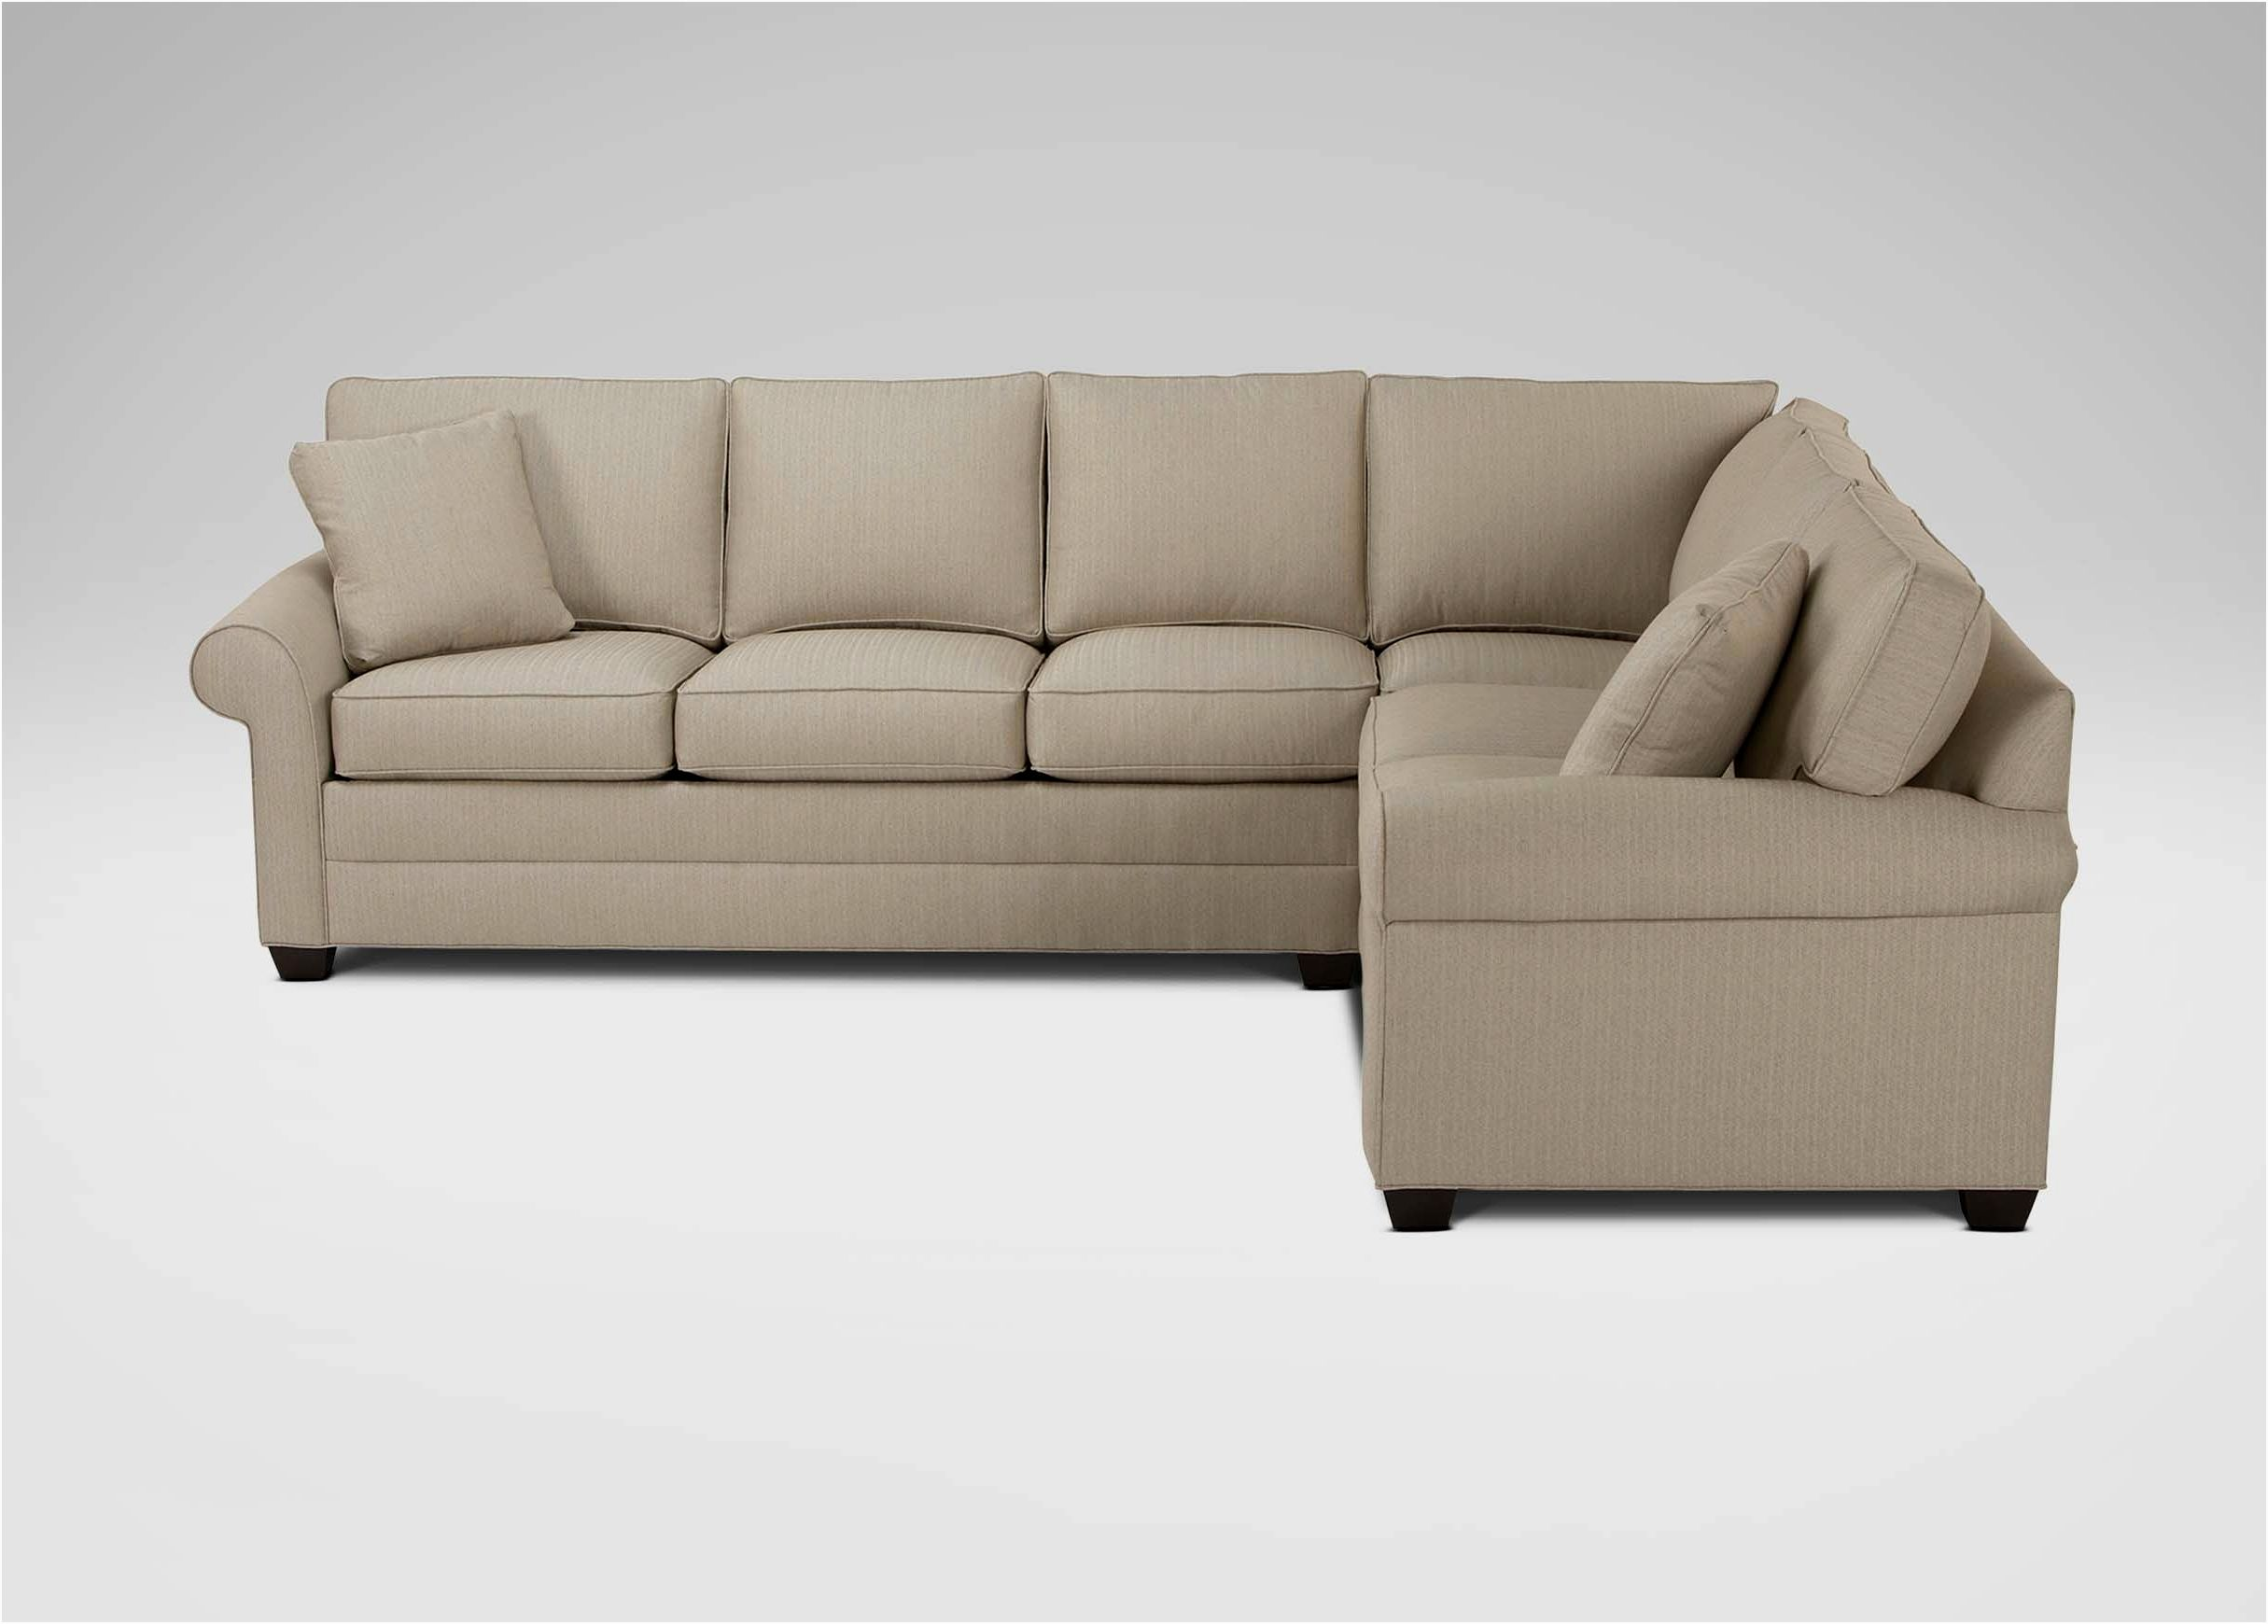 beautiful ethan allen sectional sofas photograph-Cute Ethan Allen Sectional sofas Photograph